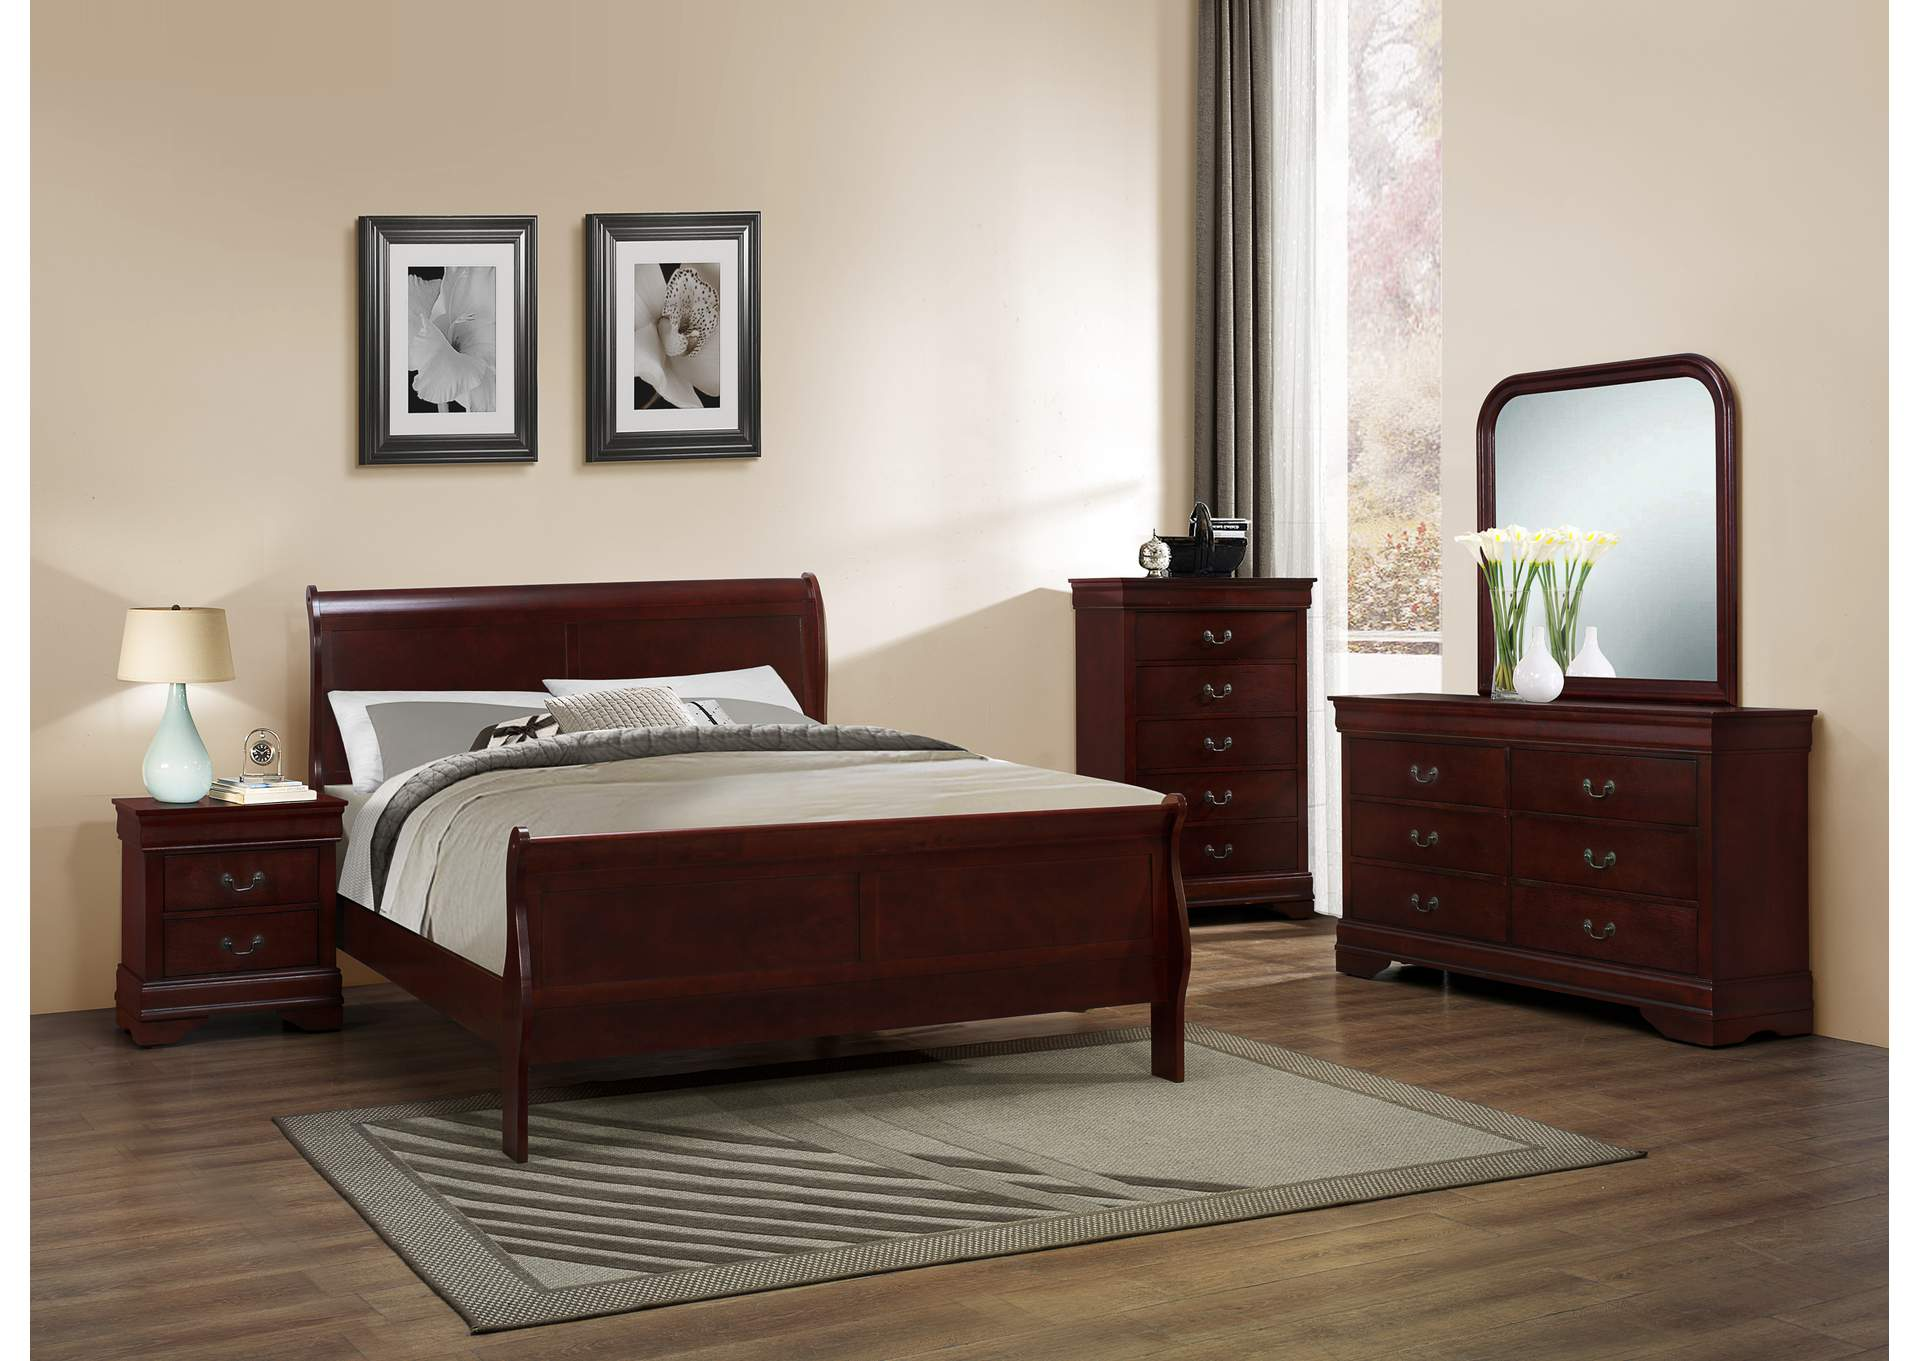 Louis Phillippe Cherry Sleigh Queen 6 Piece Bedroom Set W/ 2 Nightstand, Chest, Dresser & Mirror,Global Trading